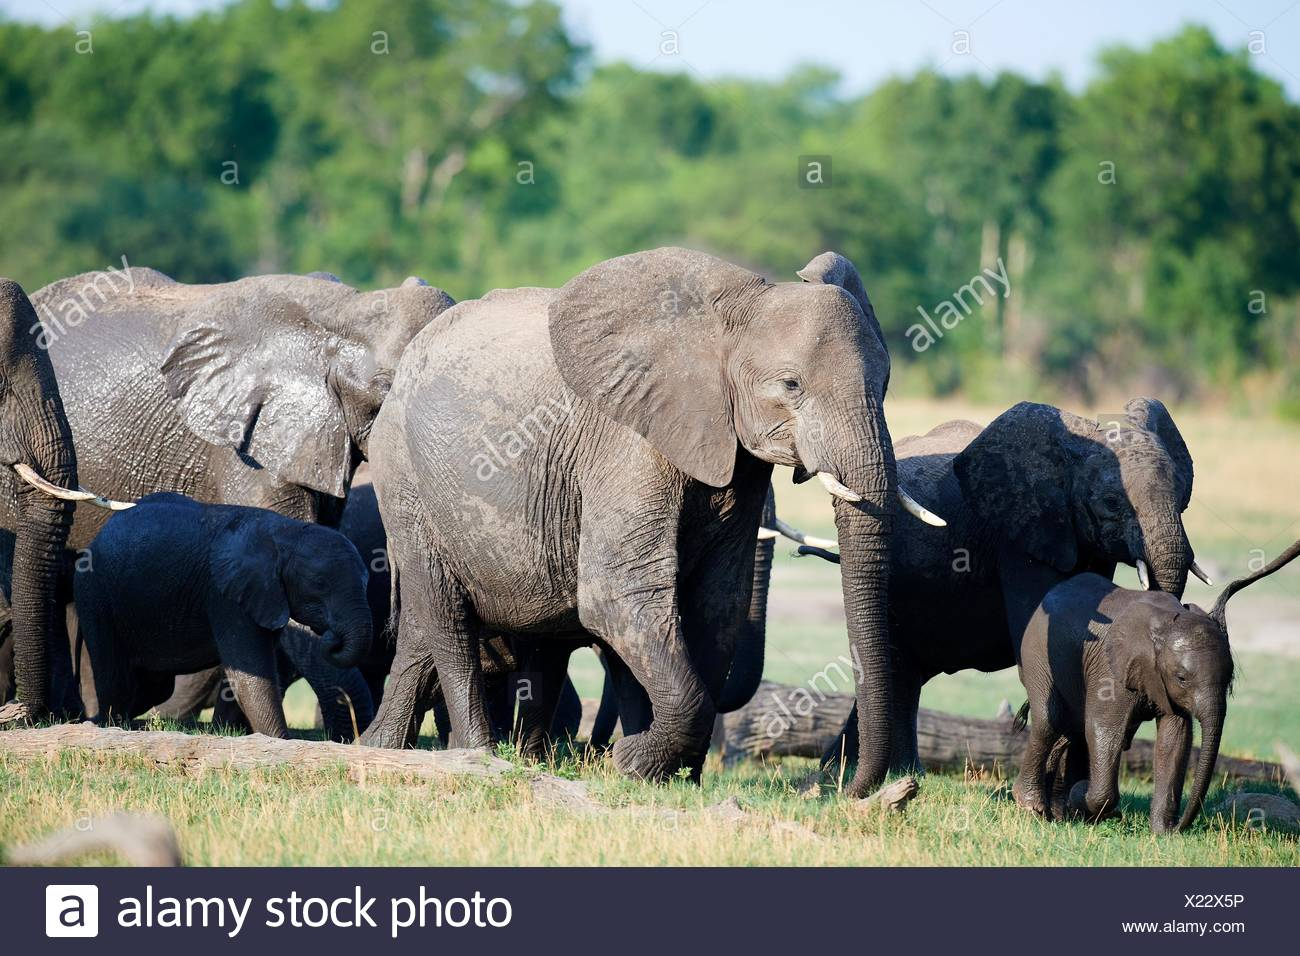 African elephant group (Loxodonta africana) with females and young foraging in the savanna. Hwange National Park, Zimbabwe. - Stock Image